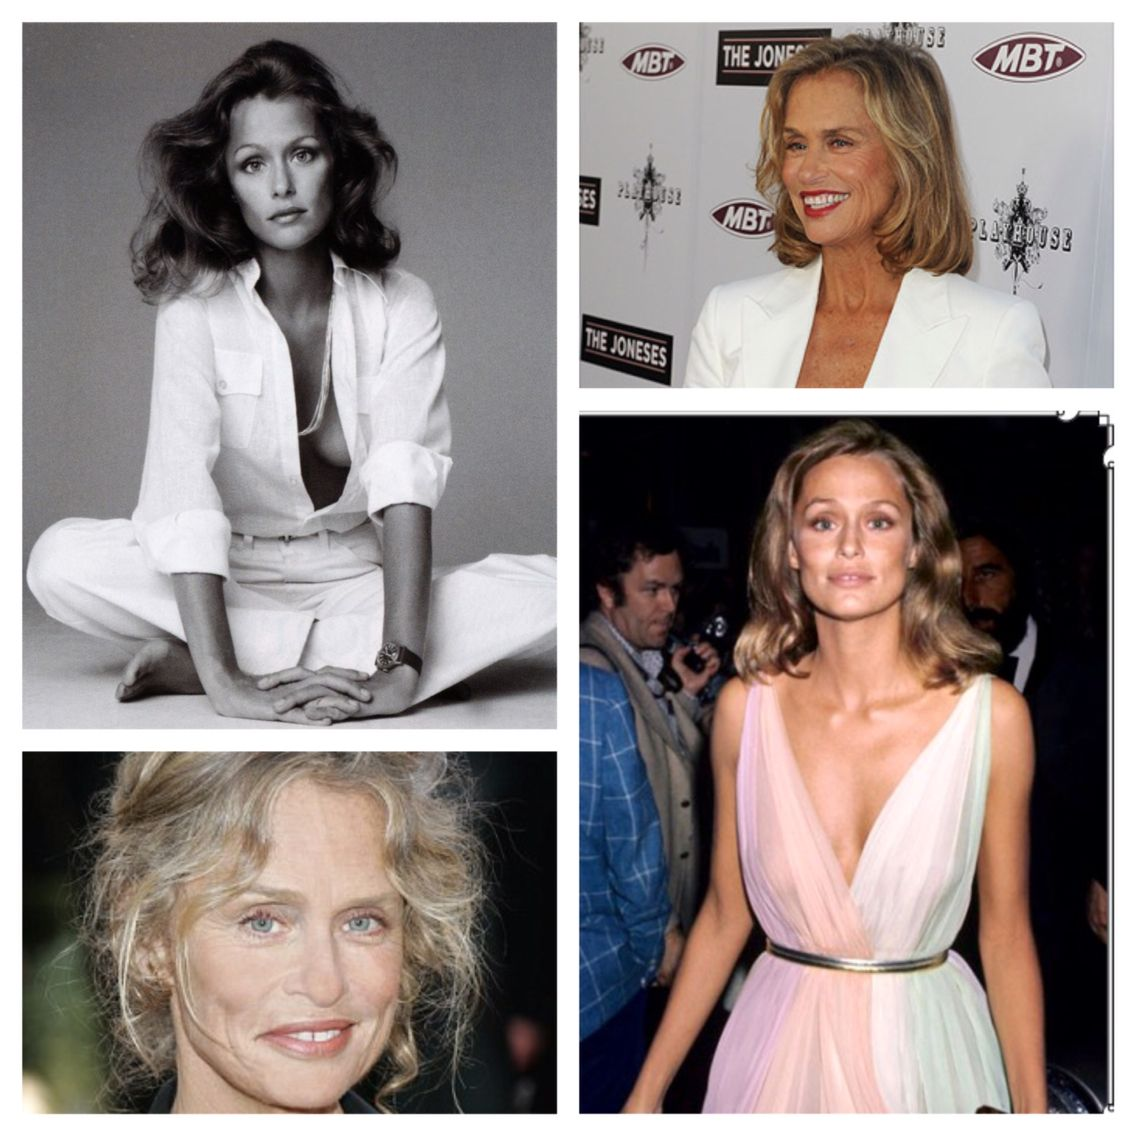 We love Lauren Hutton's clean, fresh style. Her look is ageless. Her style was the best of Studio 54 in the 70's. She continues to be a stunner.